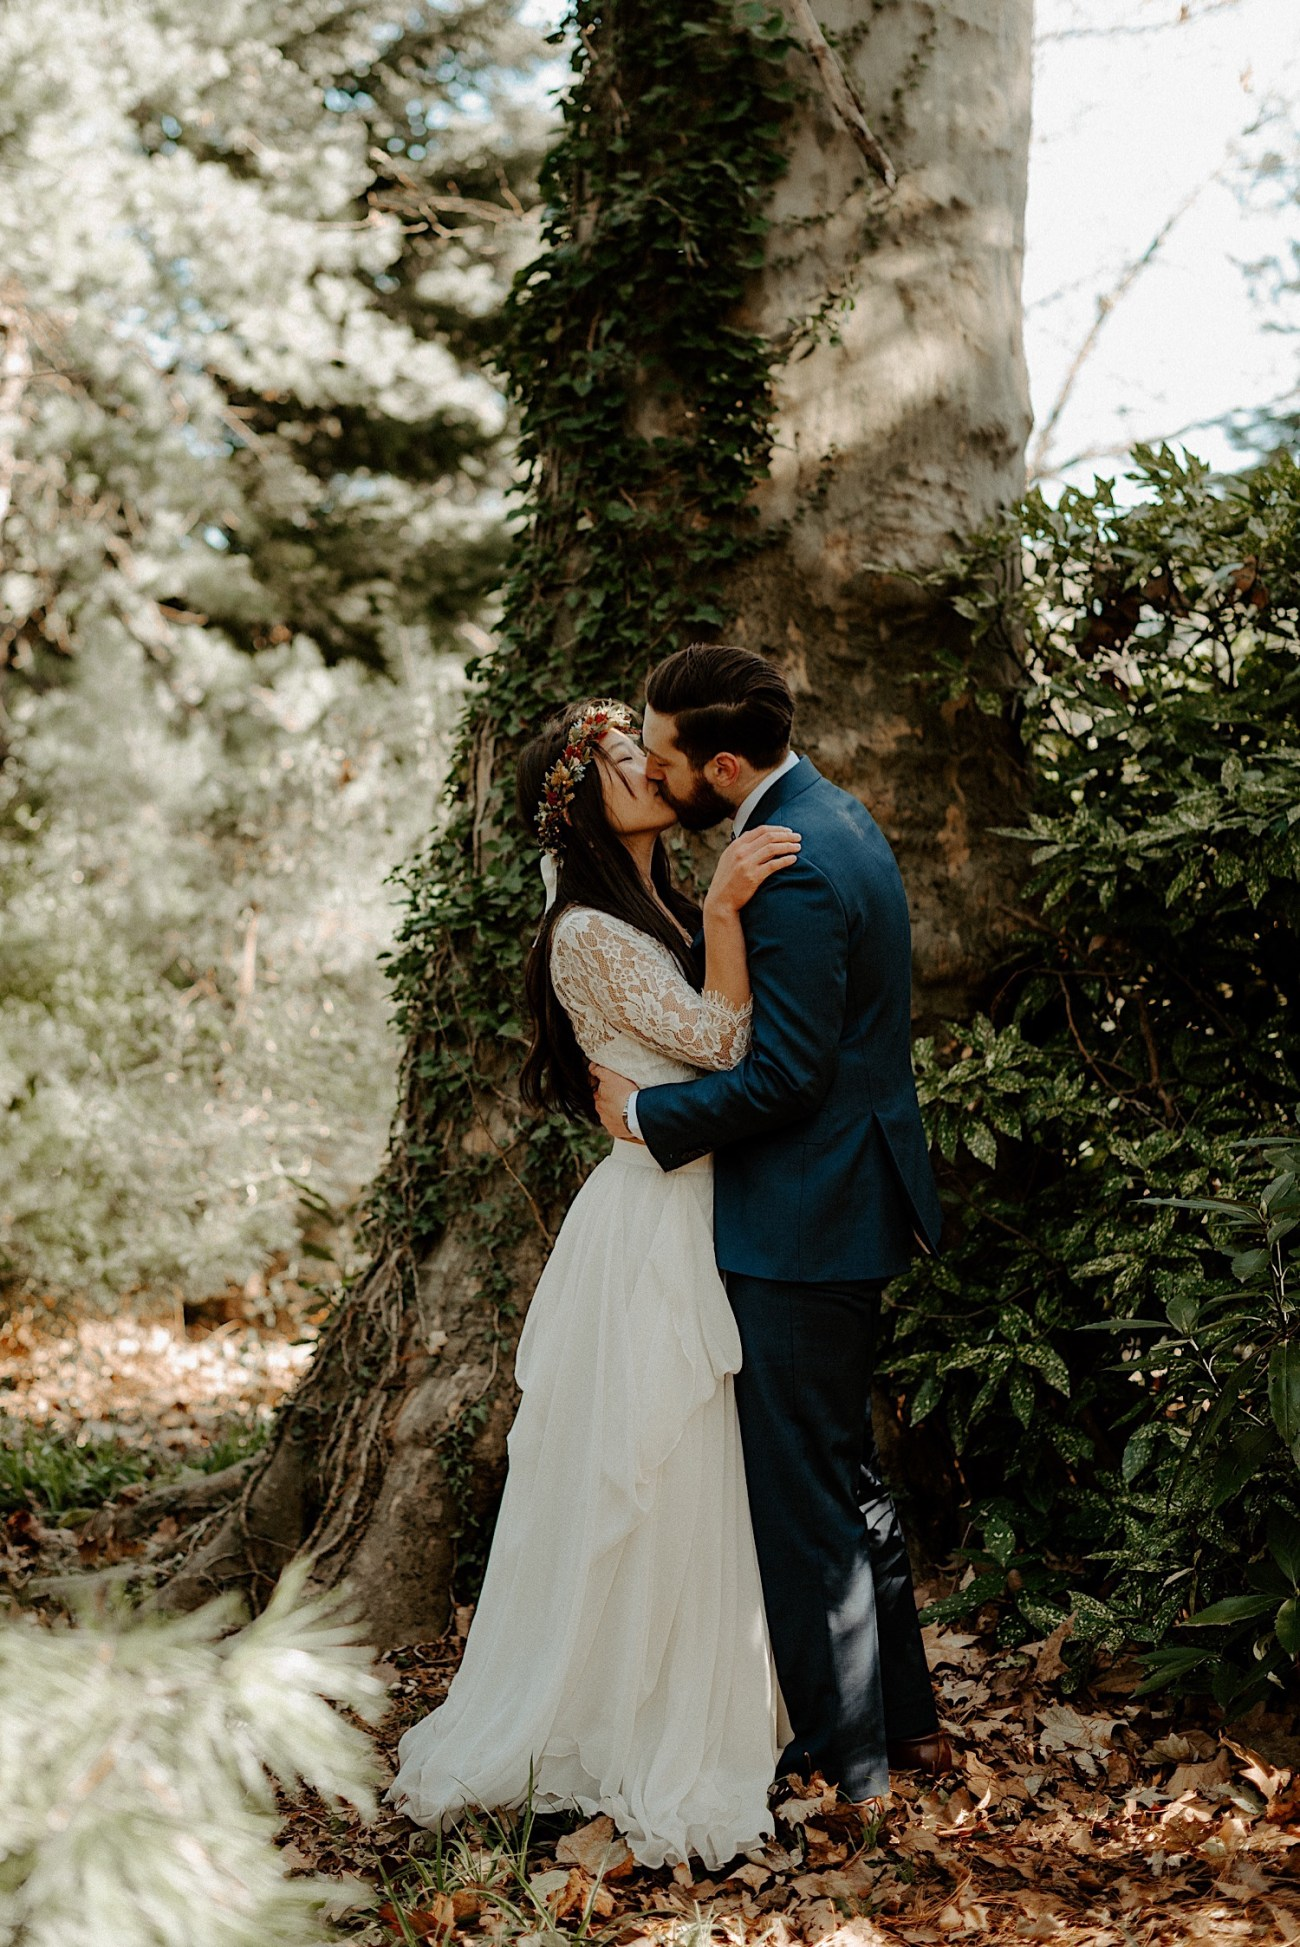 Brooklyn Botanic Garden Wedding Brooklyn Wedding Venue New York Wedding Photographer NYC Elopement 26